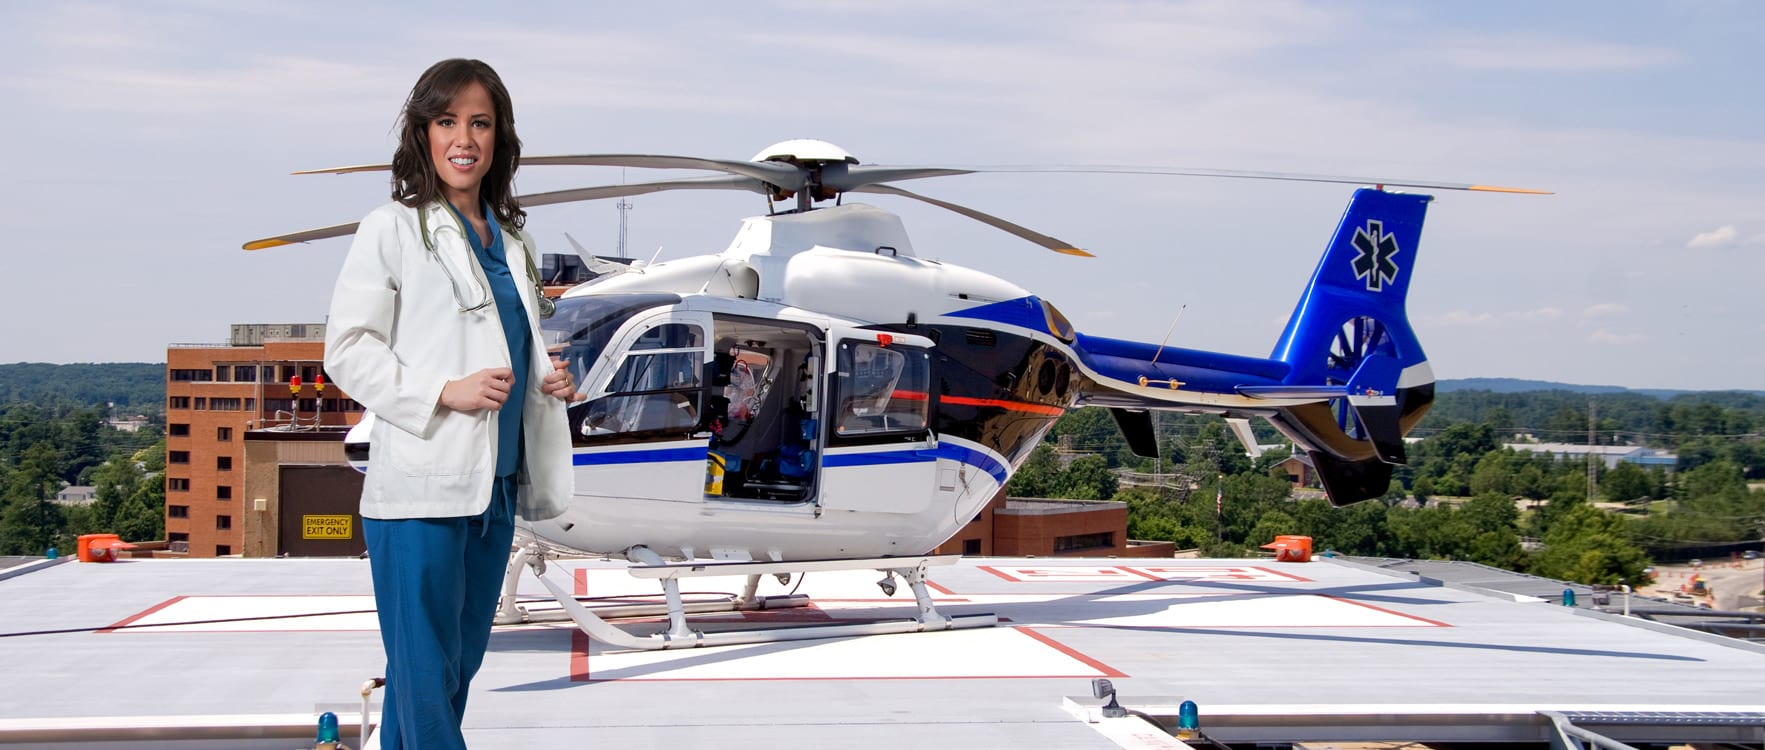 Nurse in scrubs standing in front of a helicopter